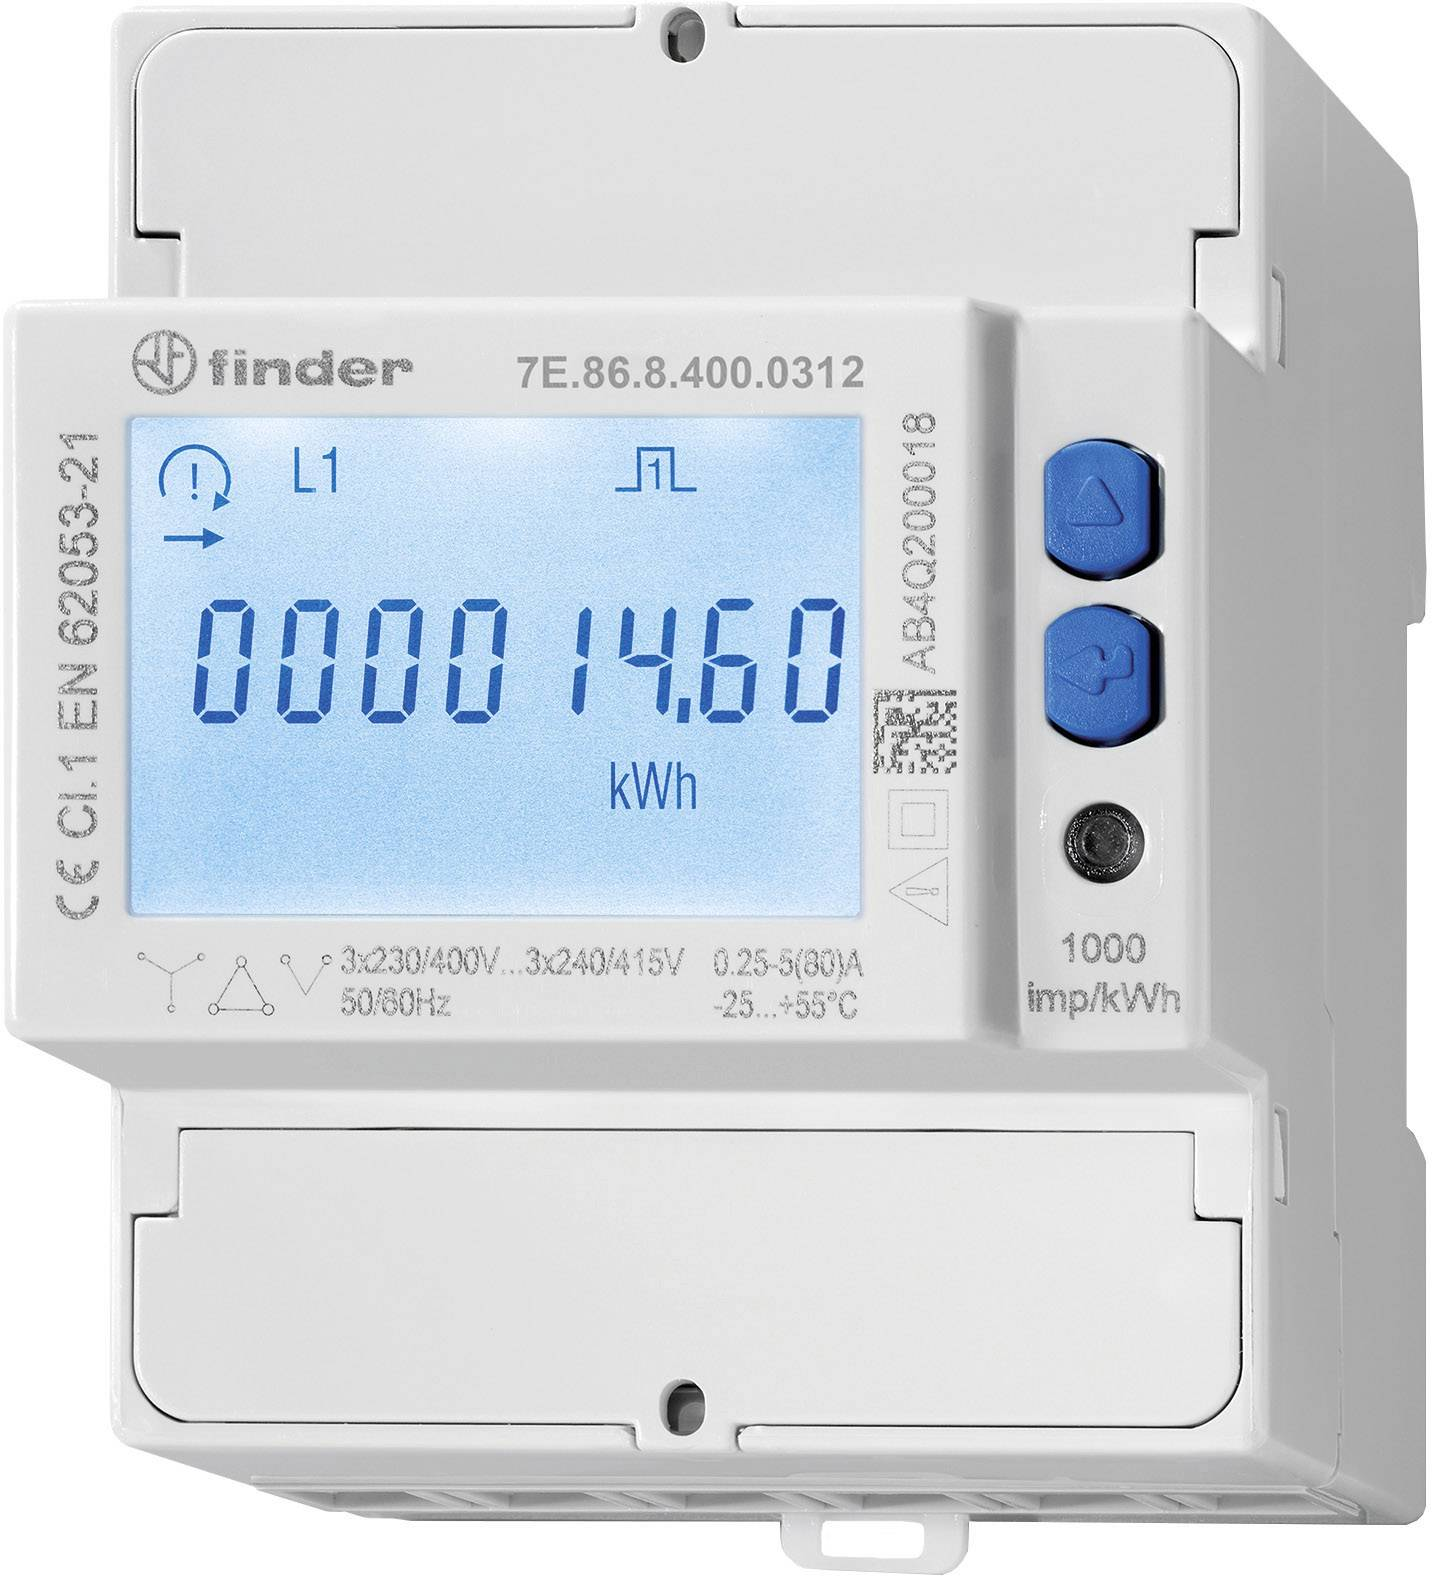 Finder 7E 86 8 400 0212 Electricity meter (3-phase) incl